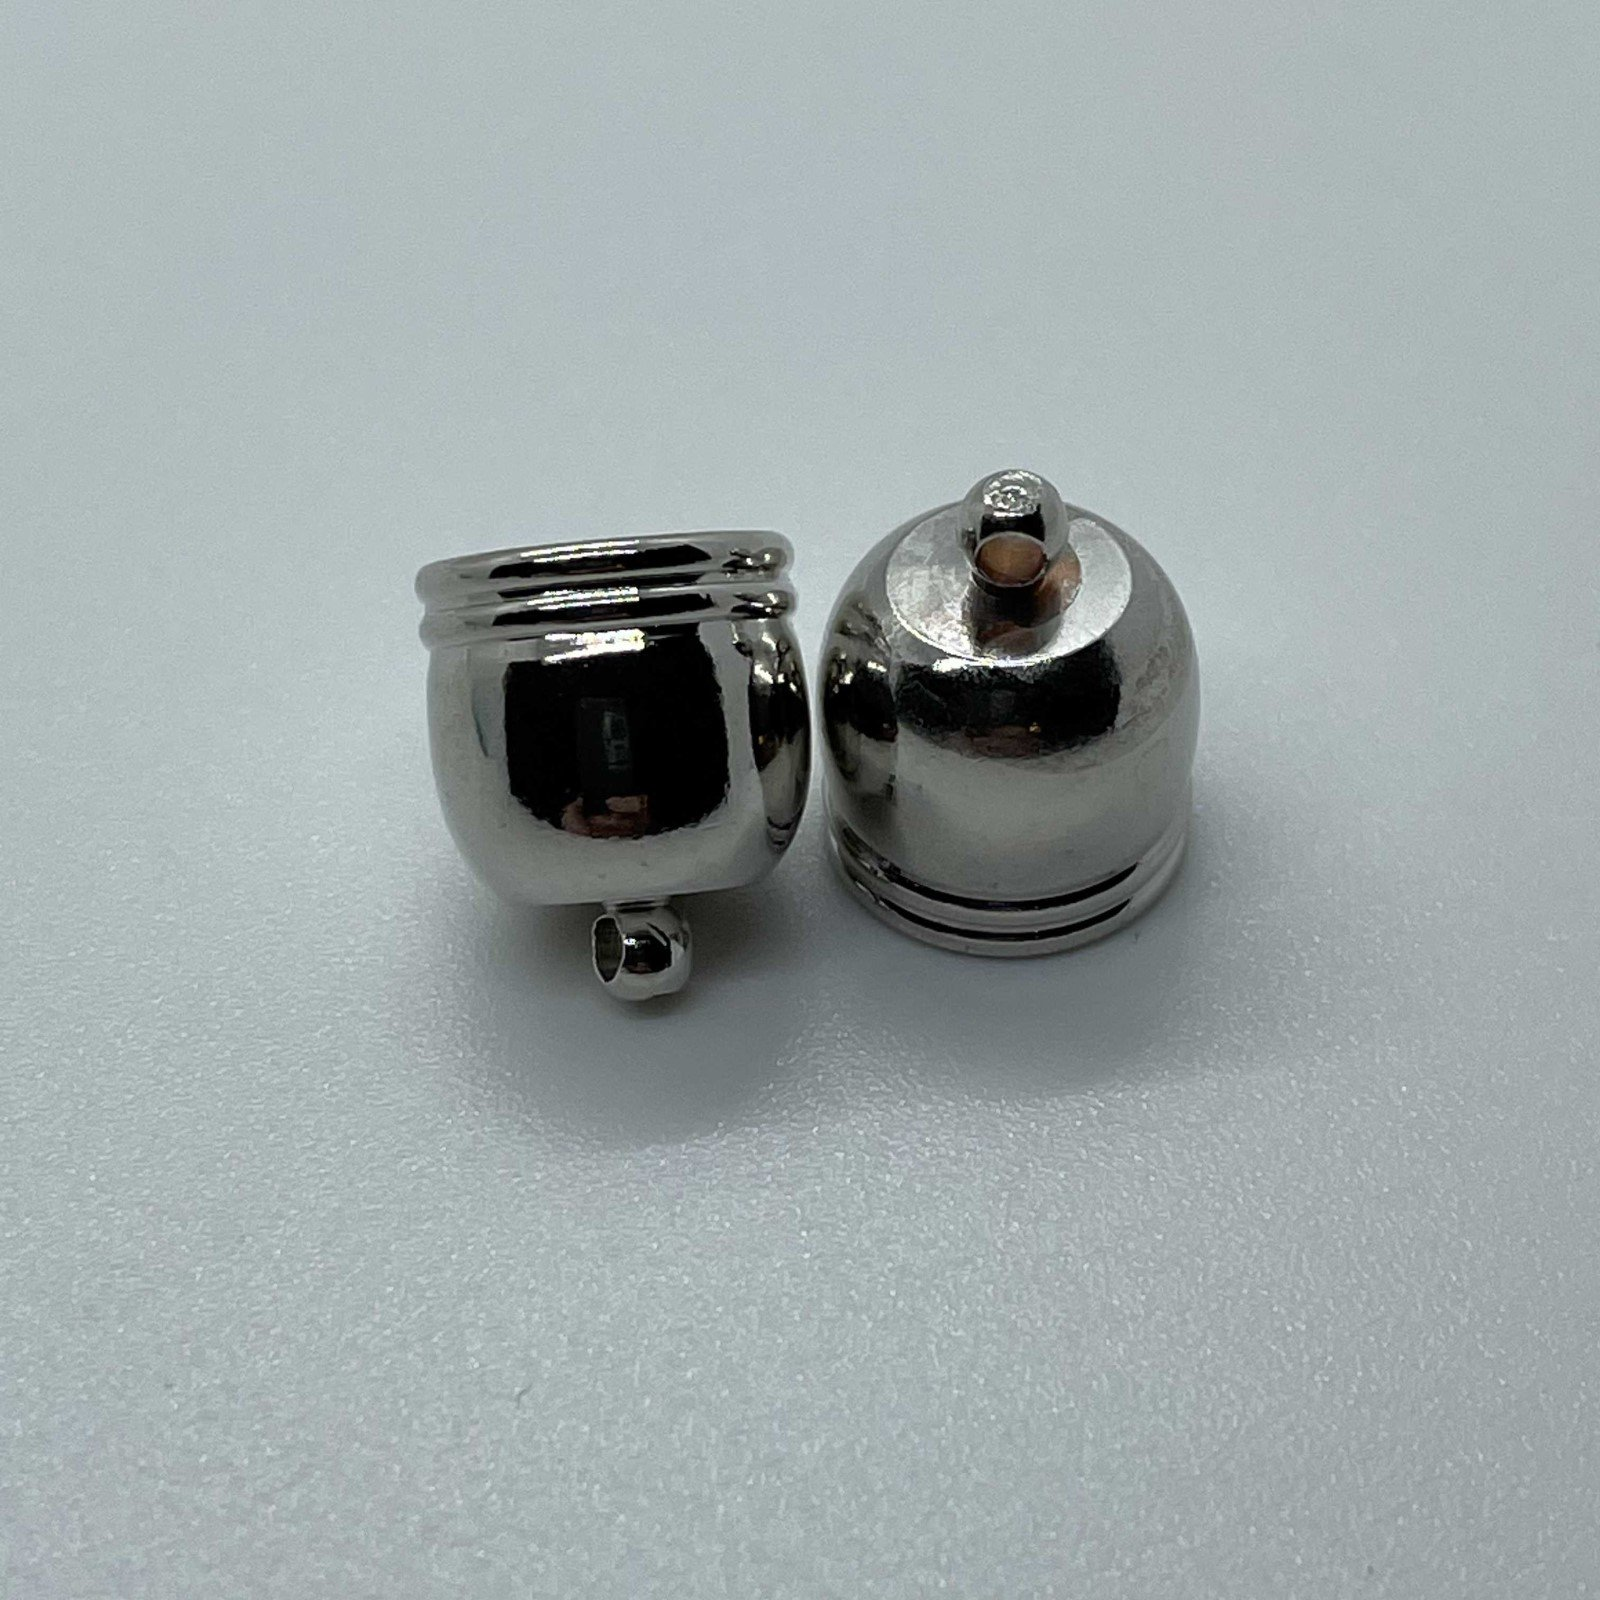 Cord End - End Cap 12x14mm w ID 10mm  (2 pieces/1 pair)